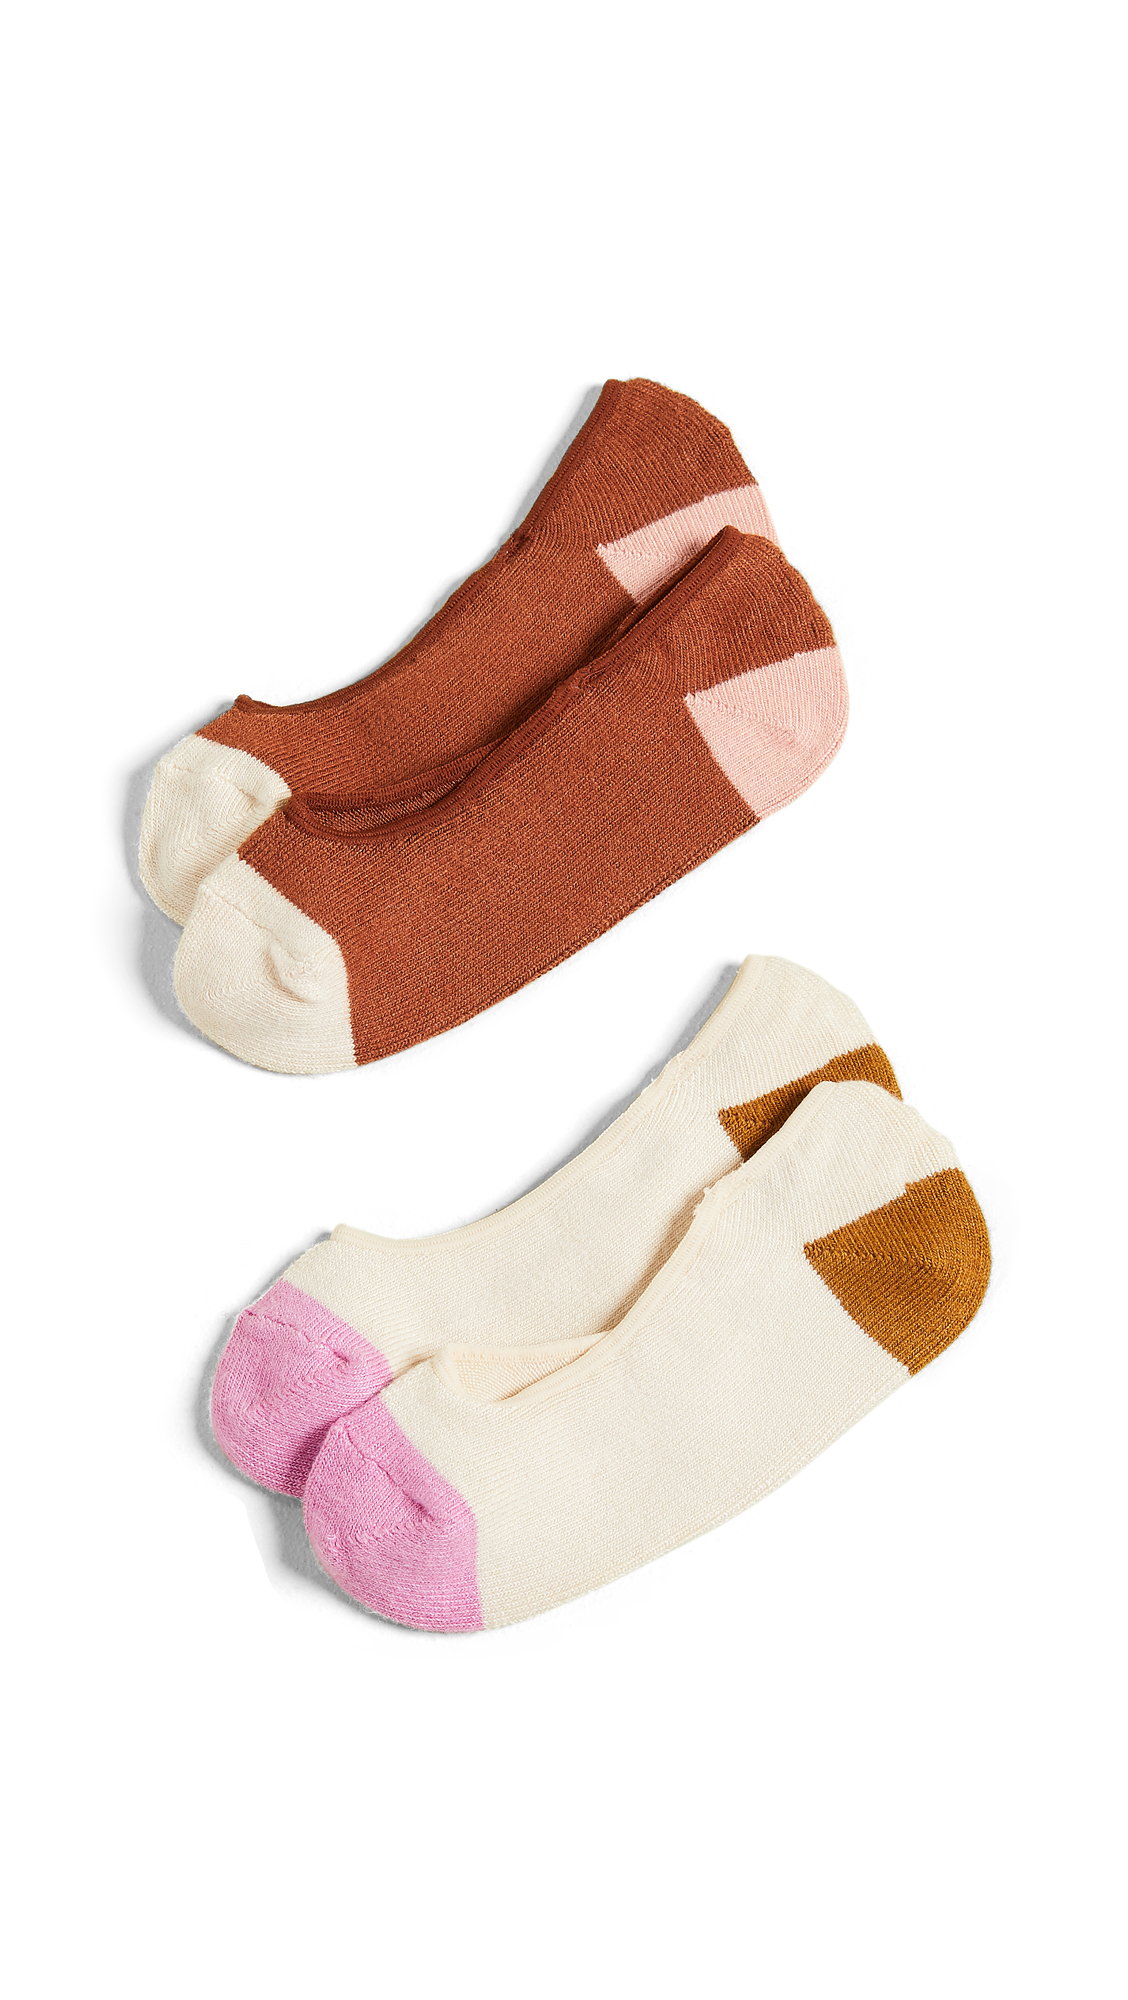 Madewell 2 Pack Colorblock No Show Socks In Light Petunia Multi